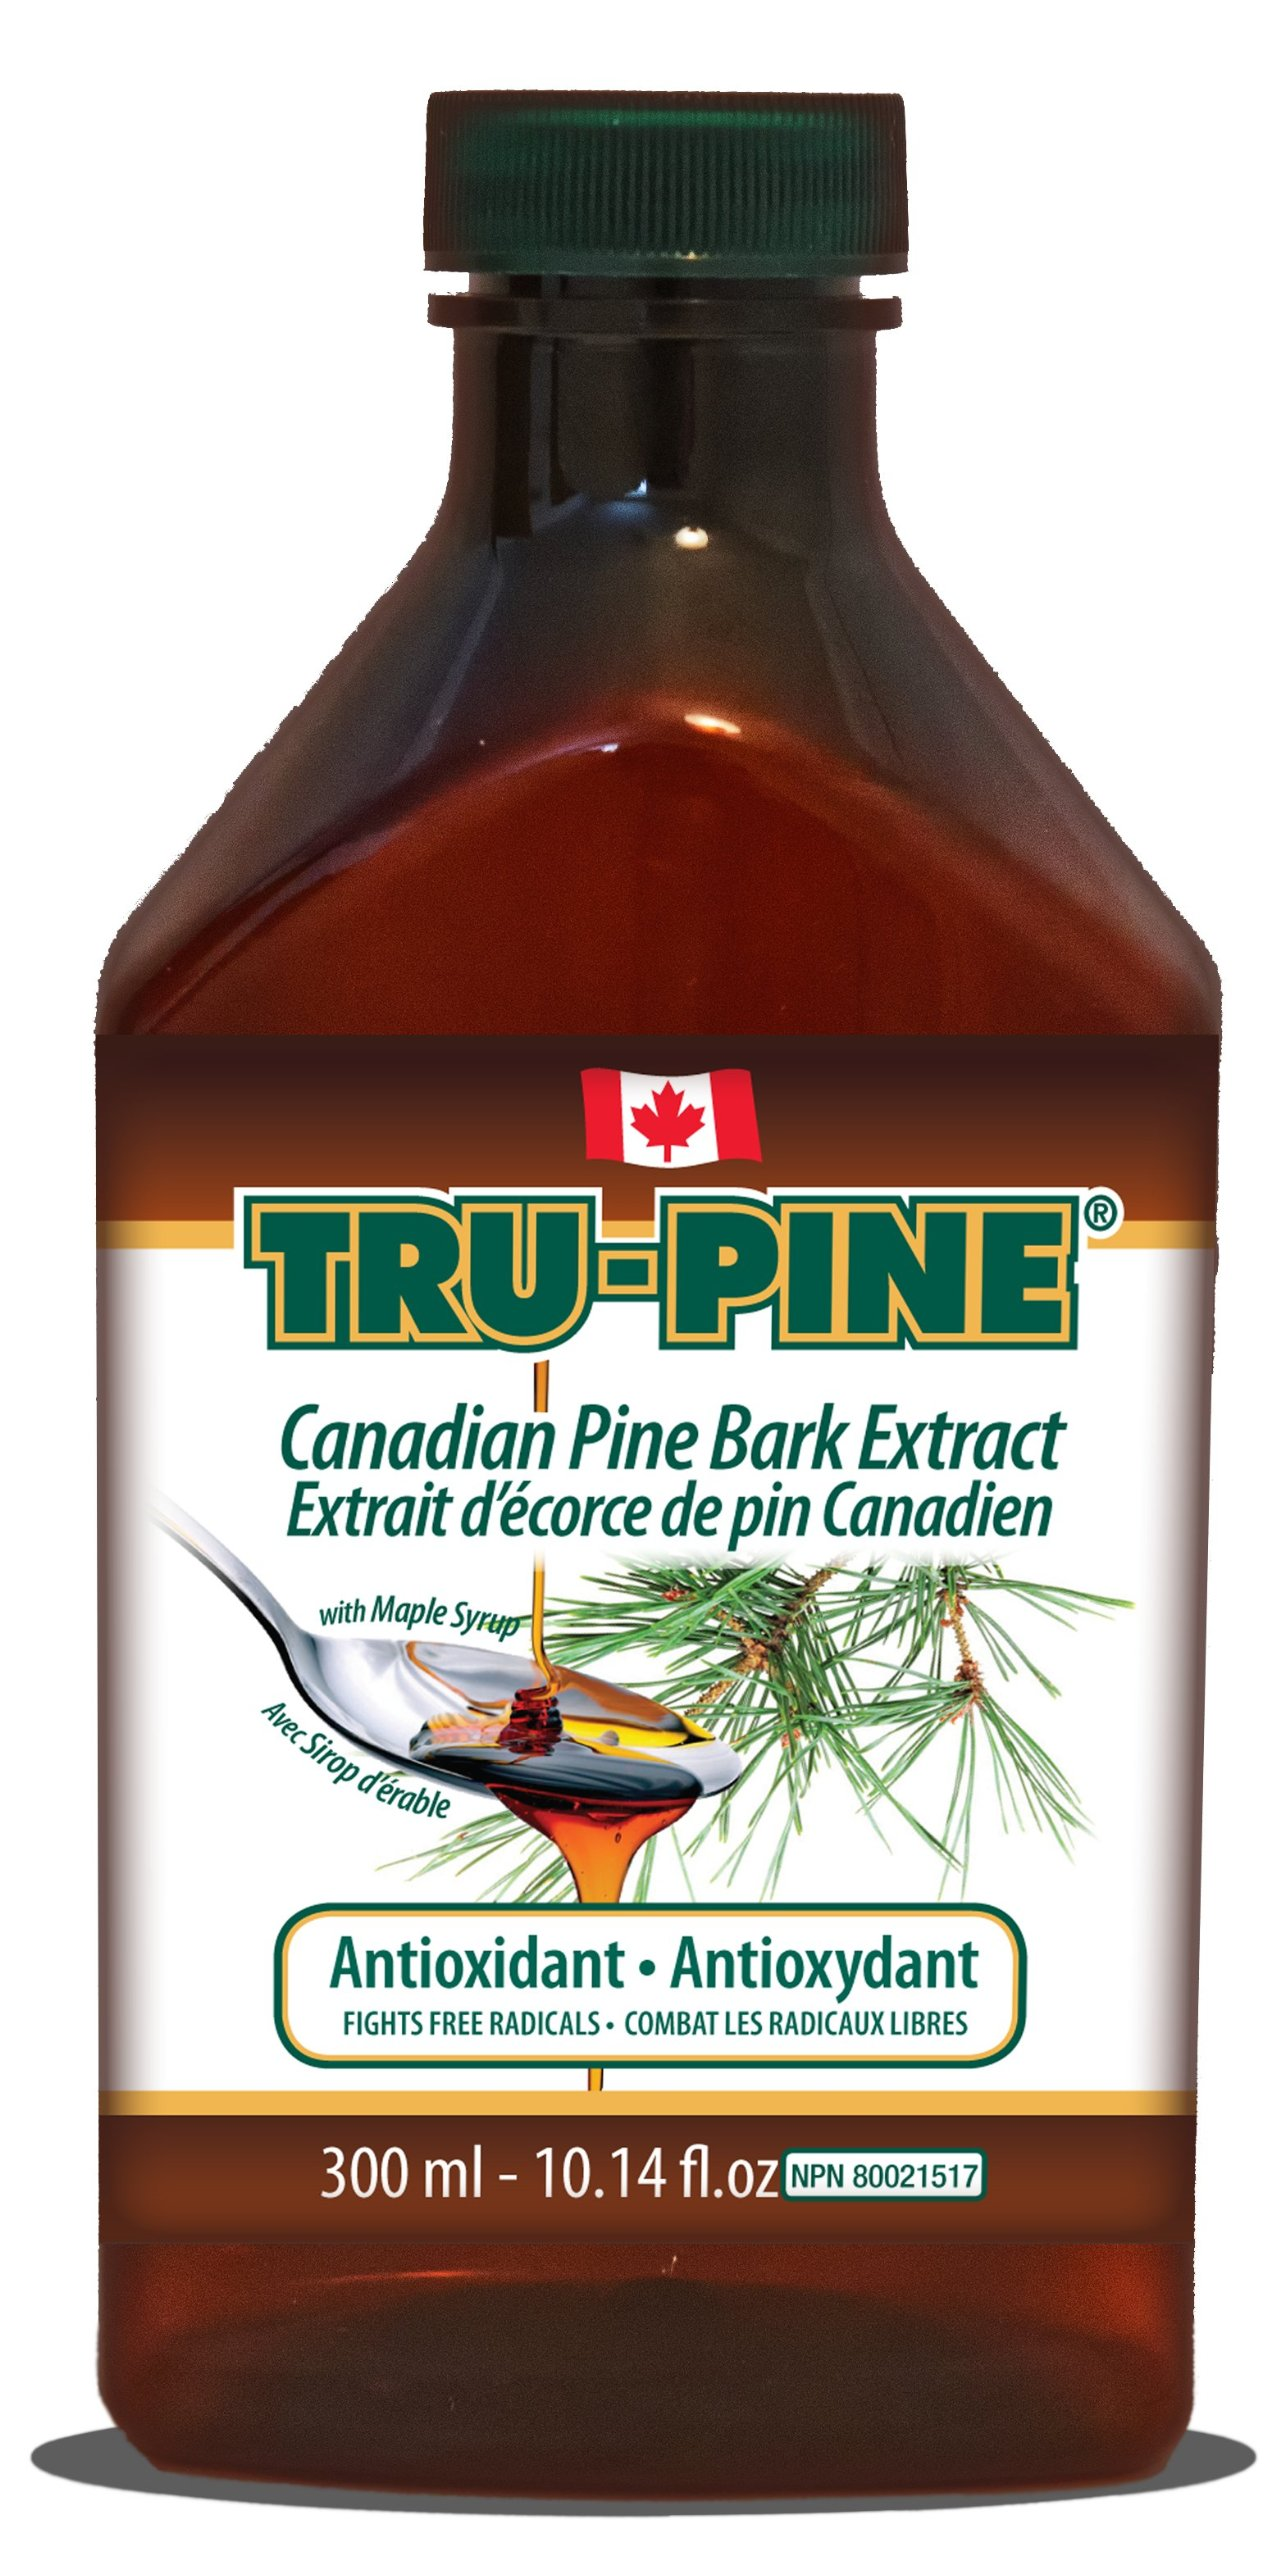 3 Bottles of TRU-PINE Antioxidant - Canadian pine bark extract liquid 10.14 oz with Delicious Maple taste